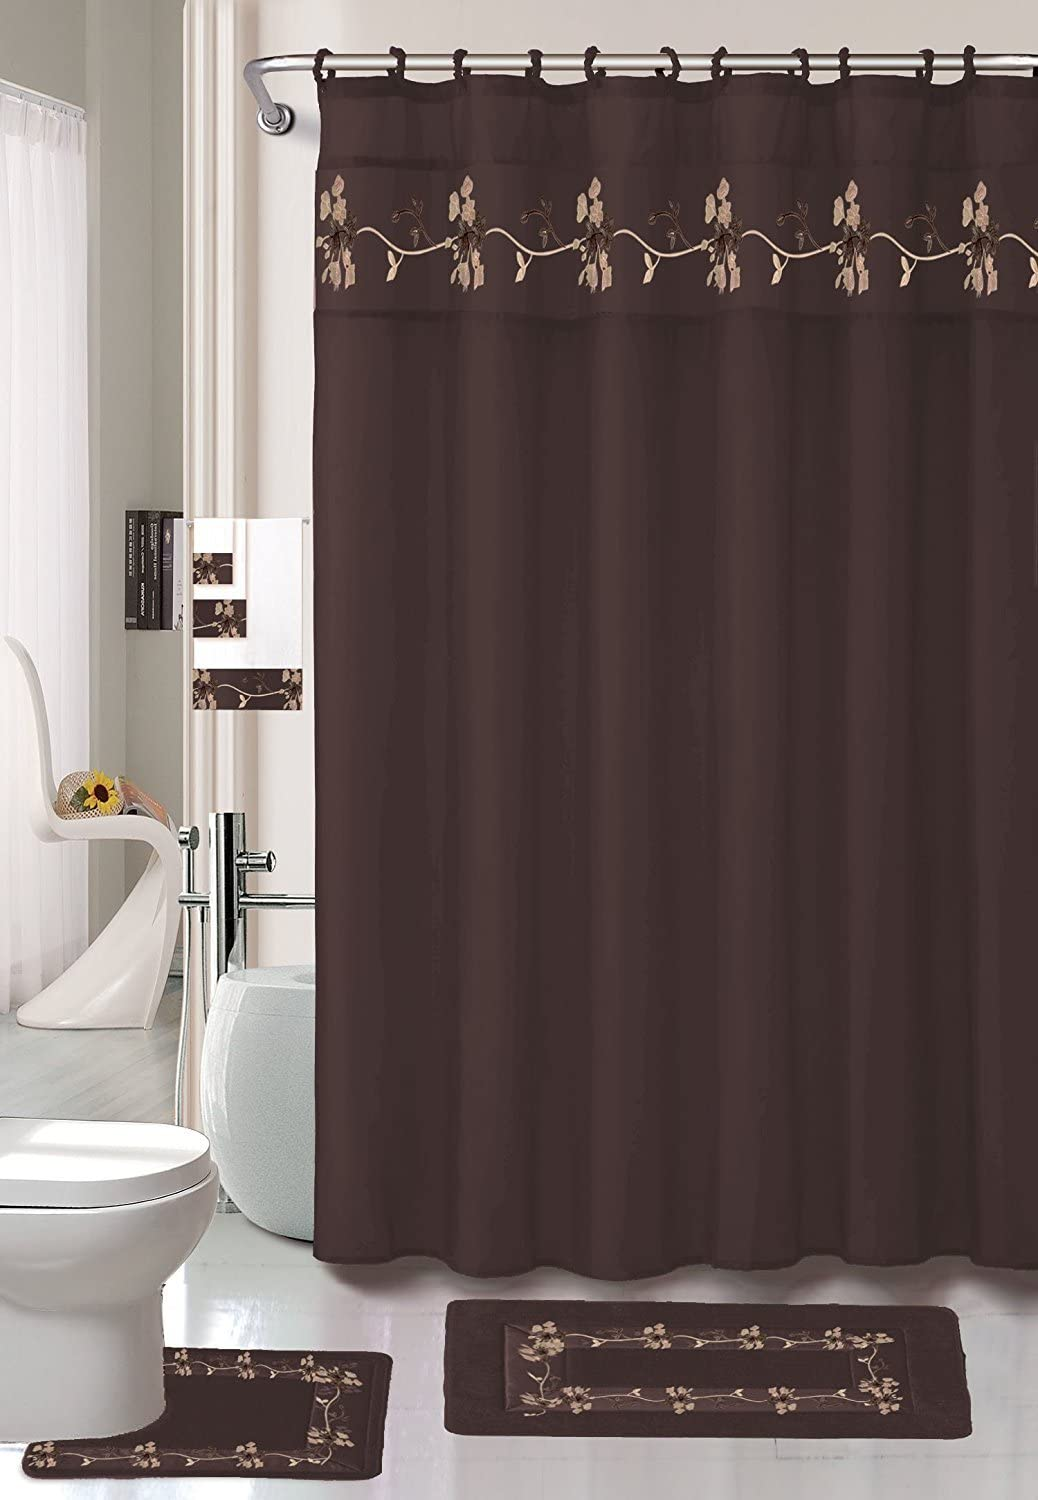 22 Piece Bath Accessory Set Beverly Chocolate Brown Bathroom Rug Set + Shower Curtain & Accessories 71aqIGNF8DL